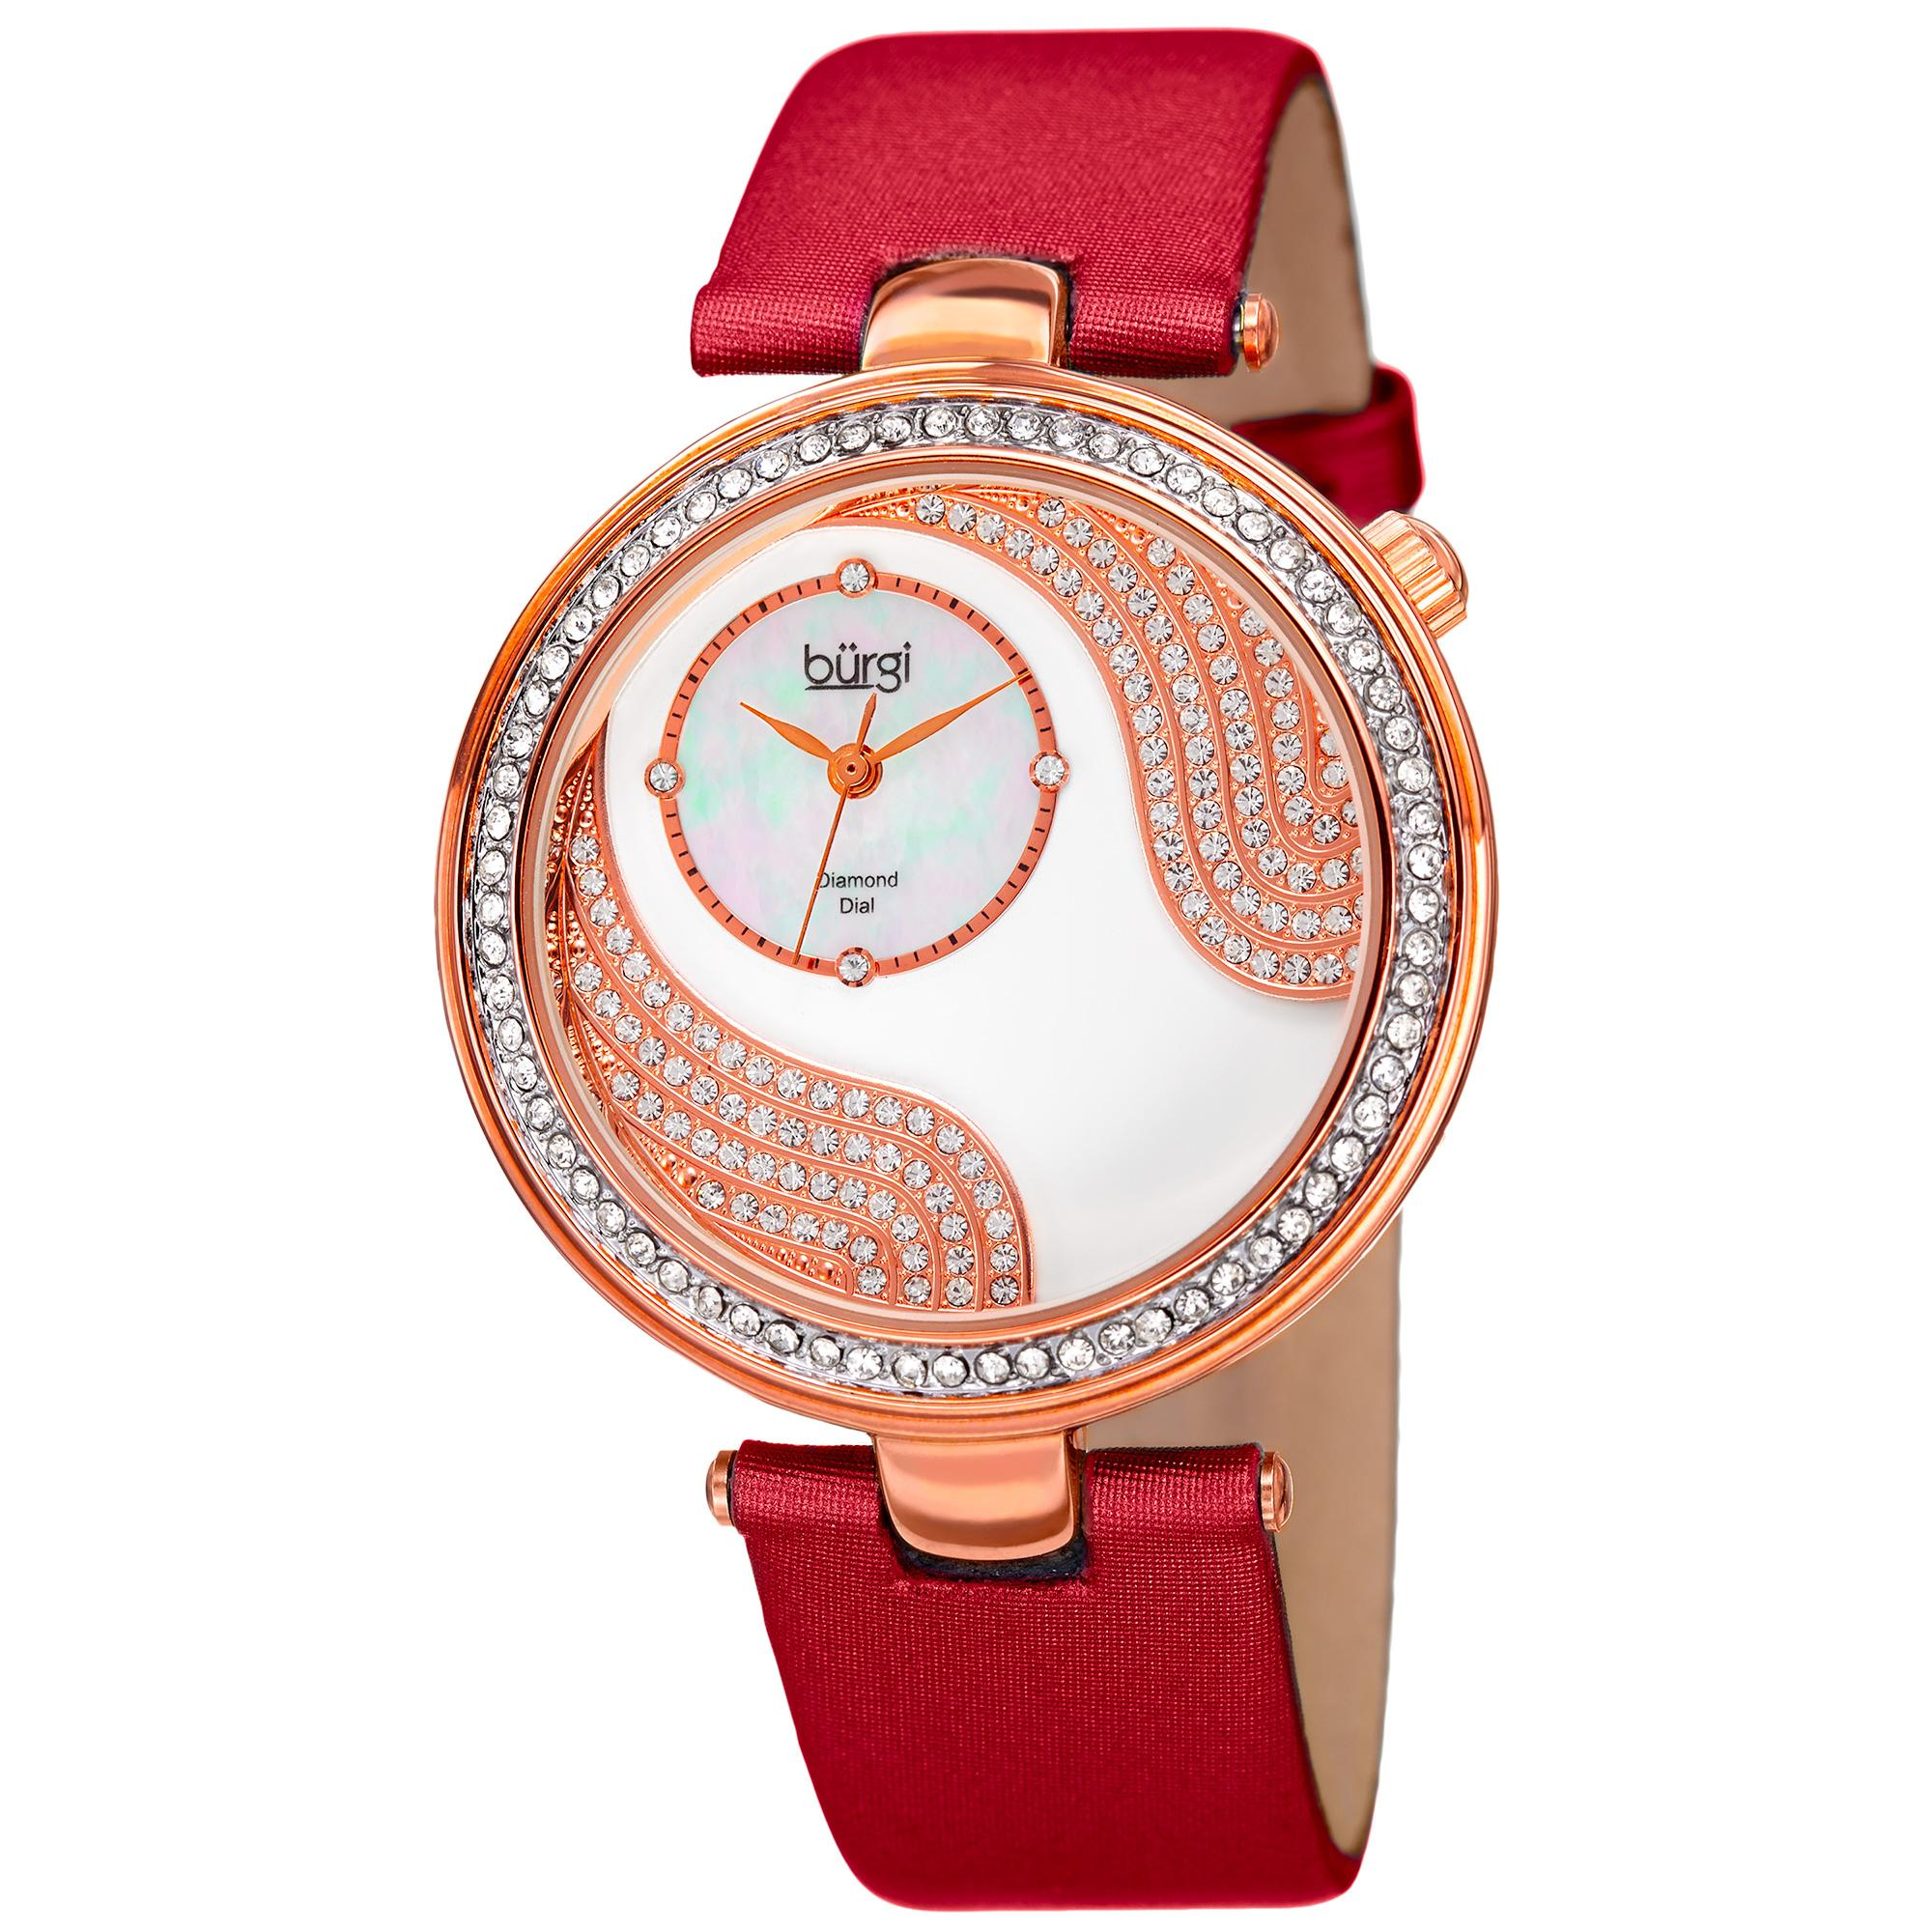 kidston watch red com strap dot briar ladies cath leather rose polka watchshop watches